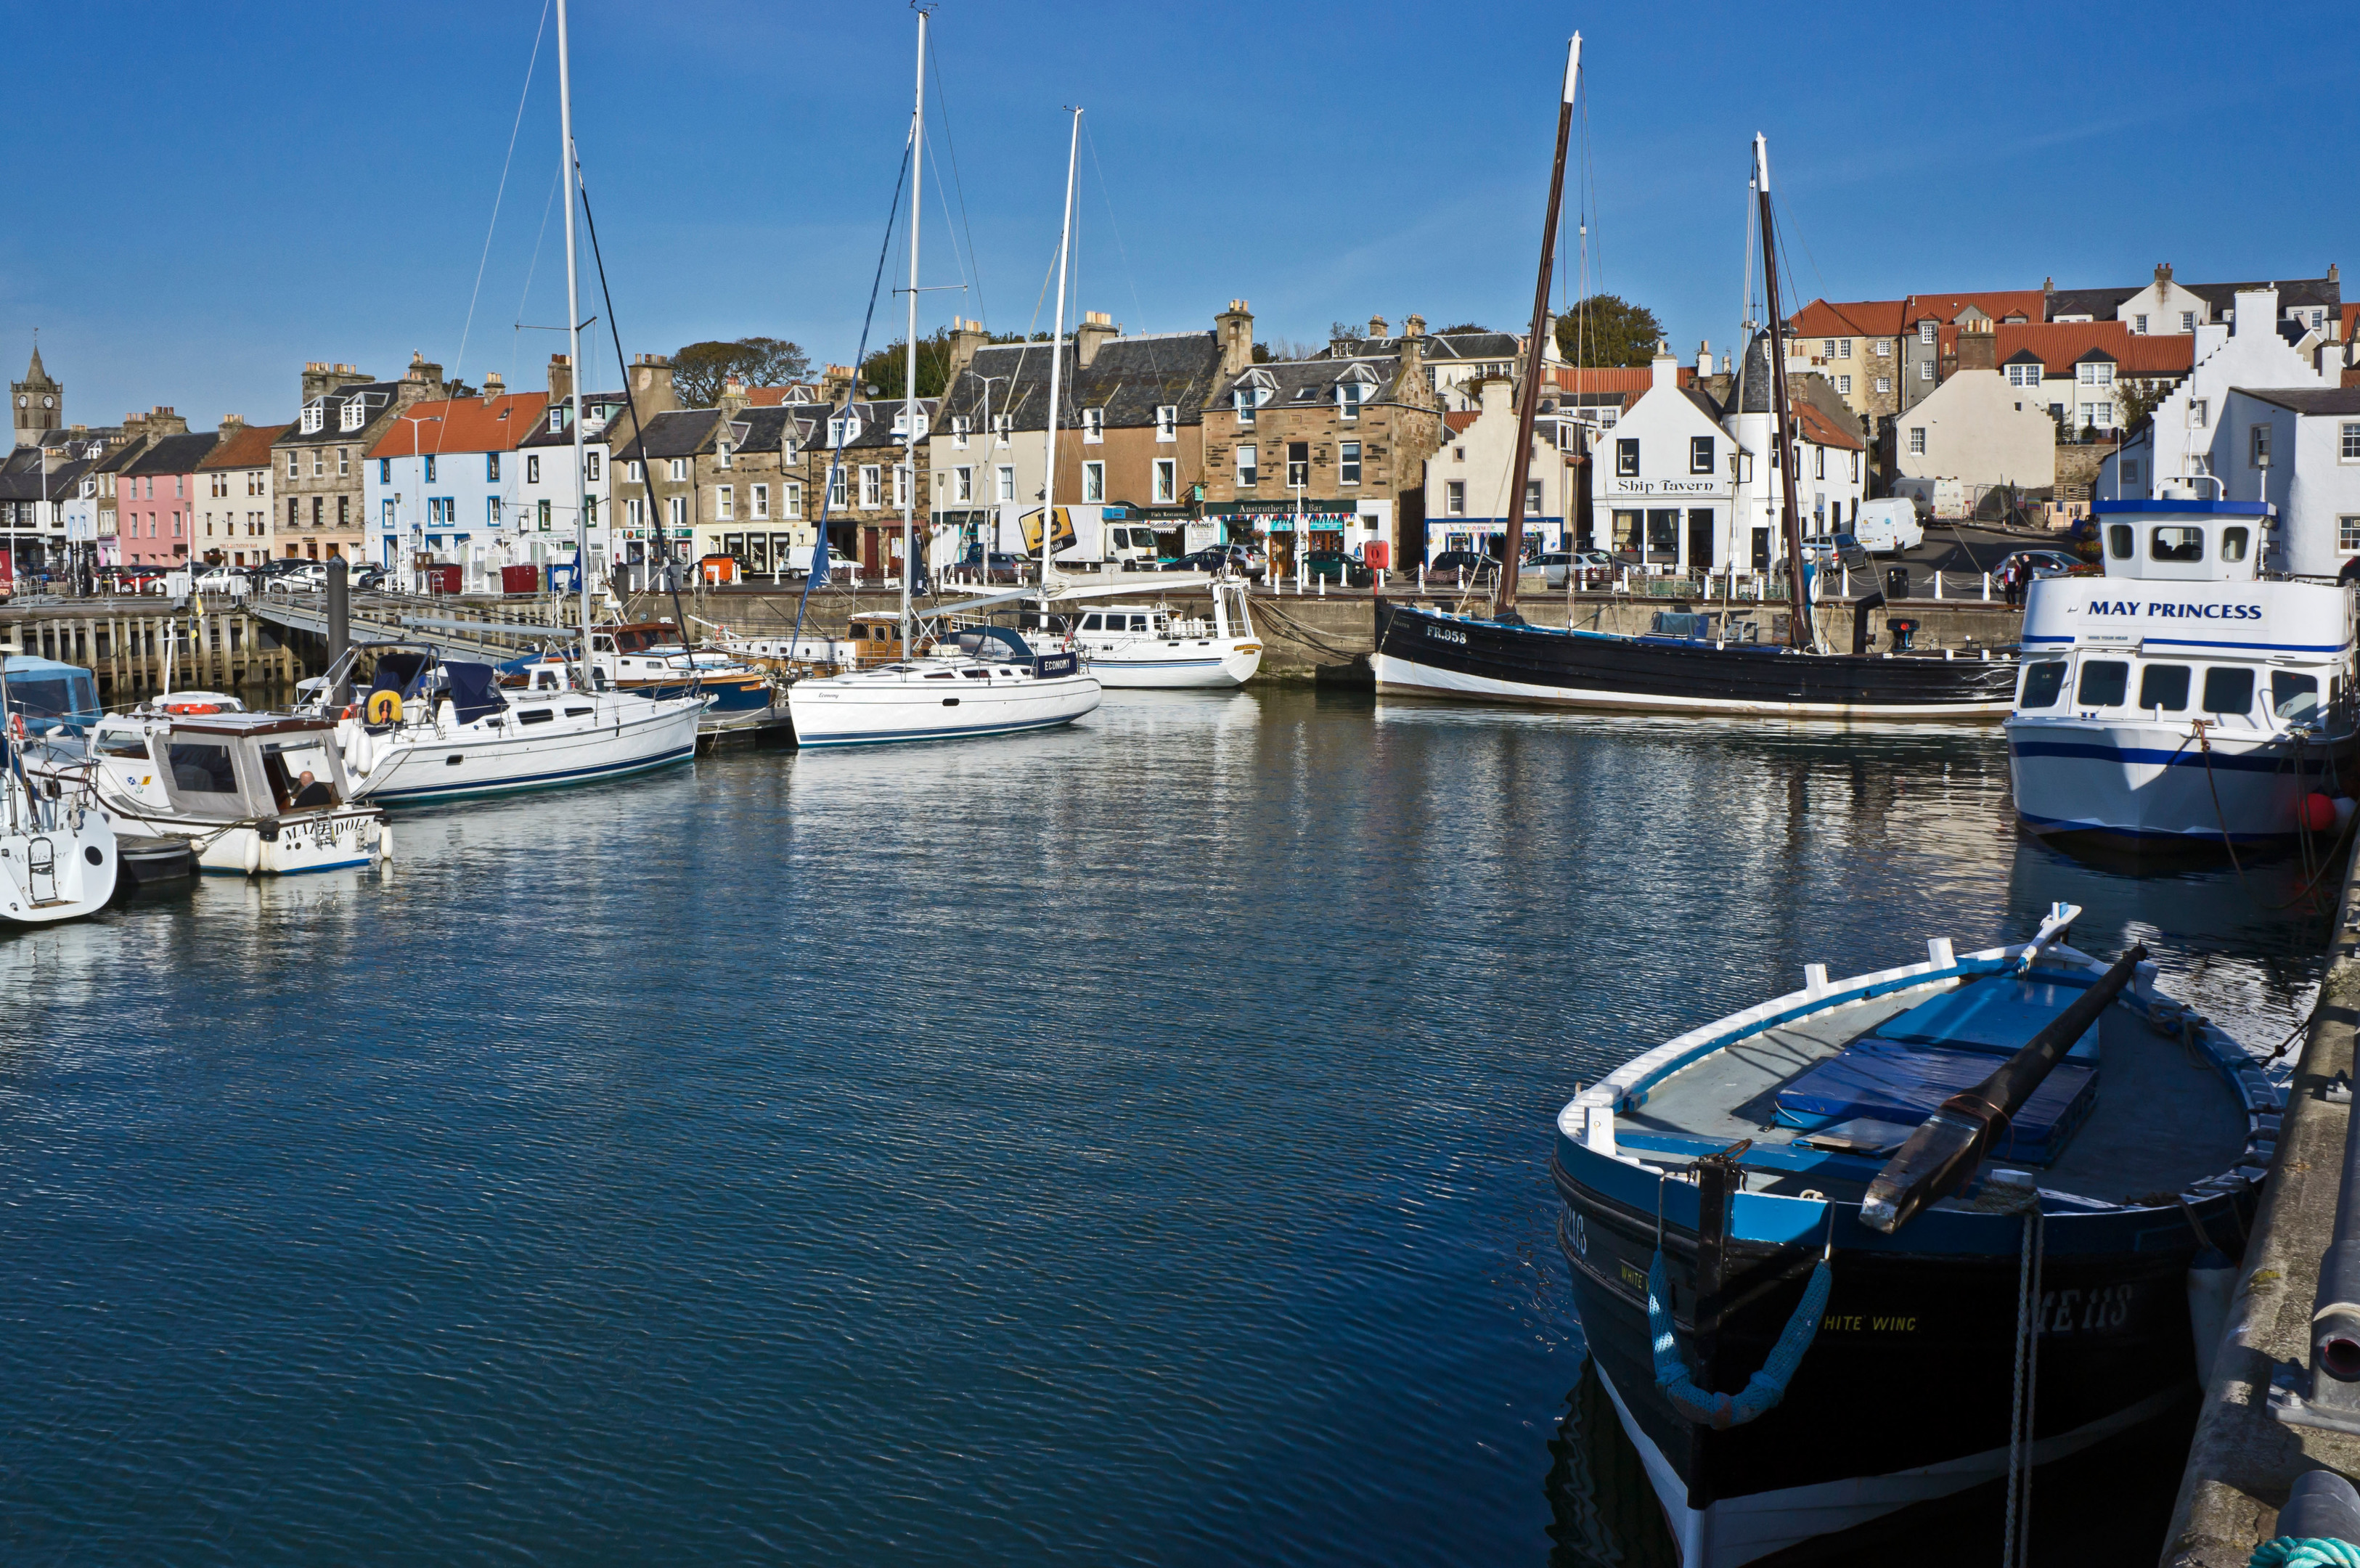 The East Neuk and its Scottish Fisheries Museum were neglected in Tay Cities Deal, says Cllr Linda Holt